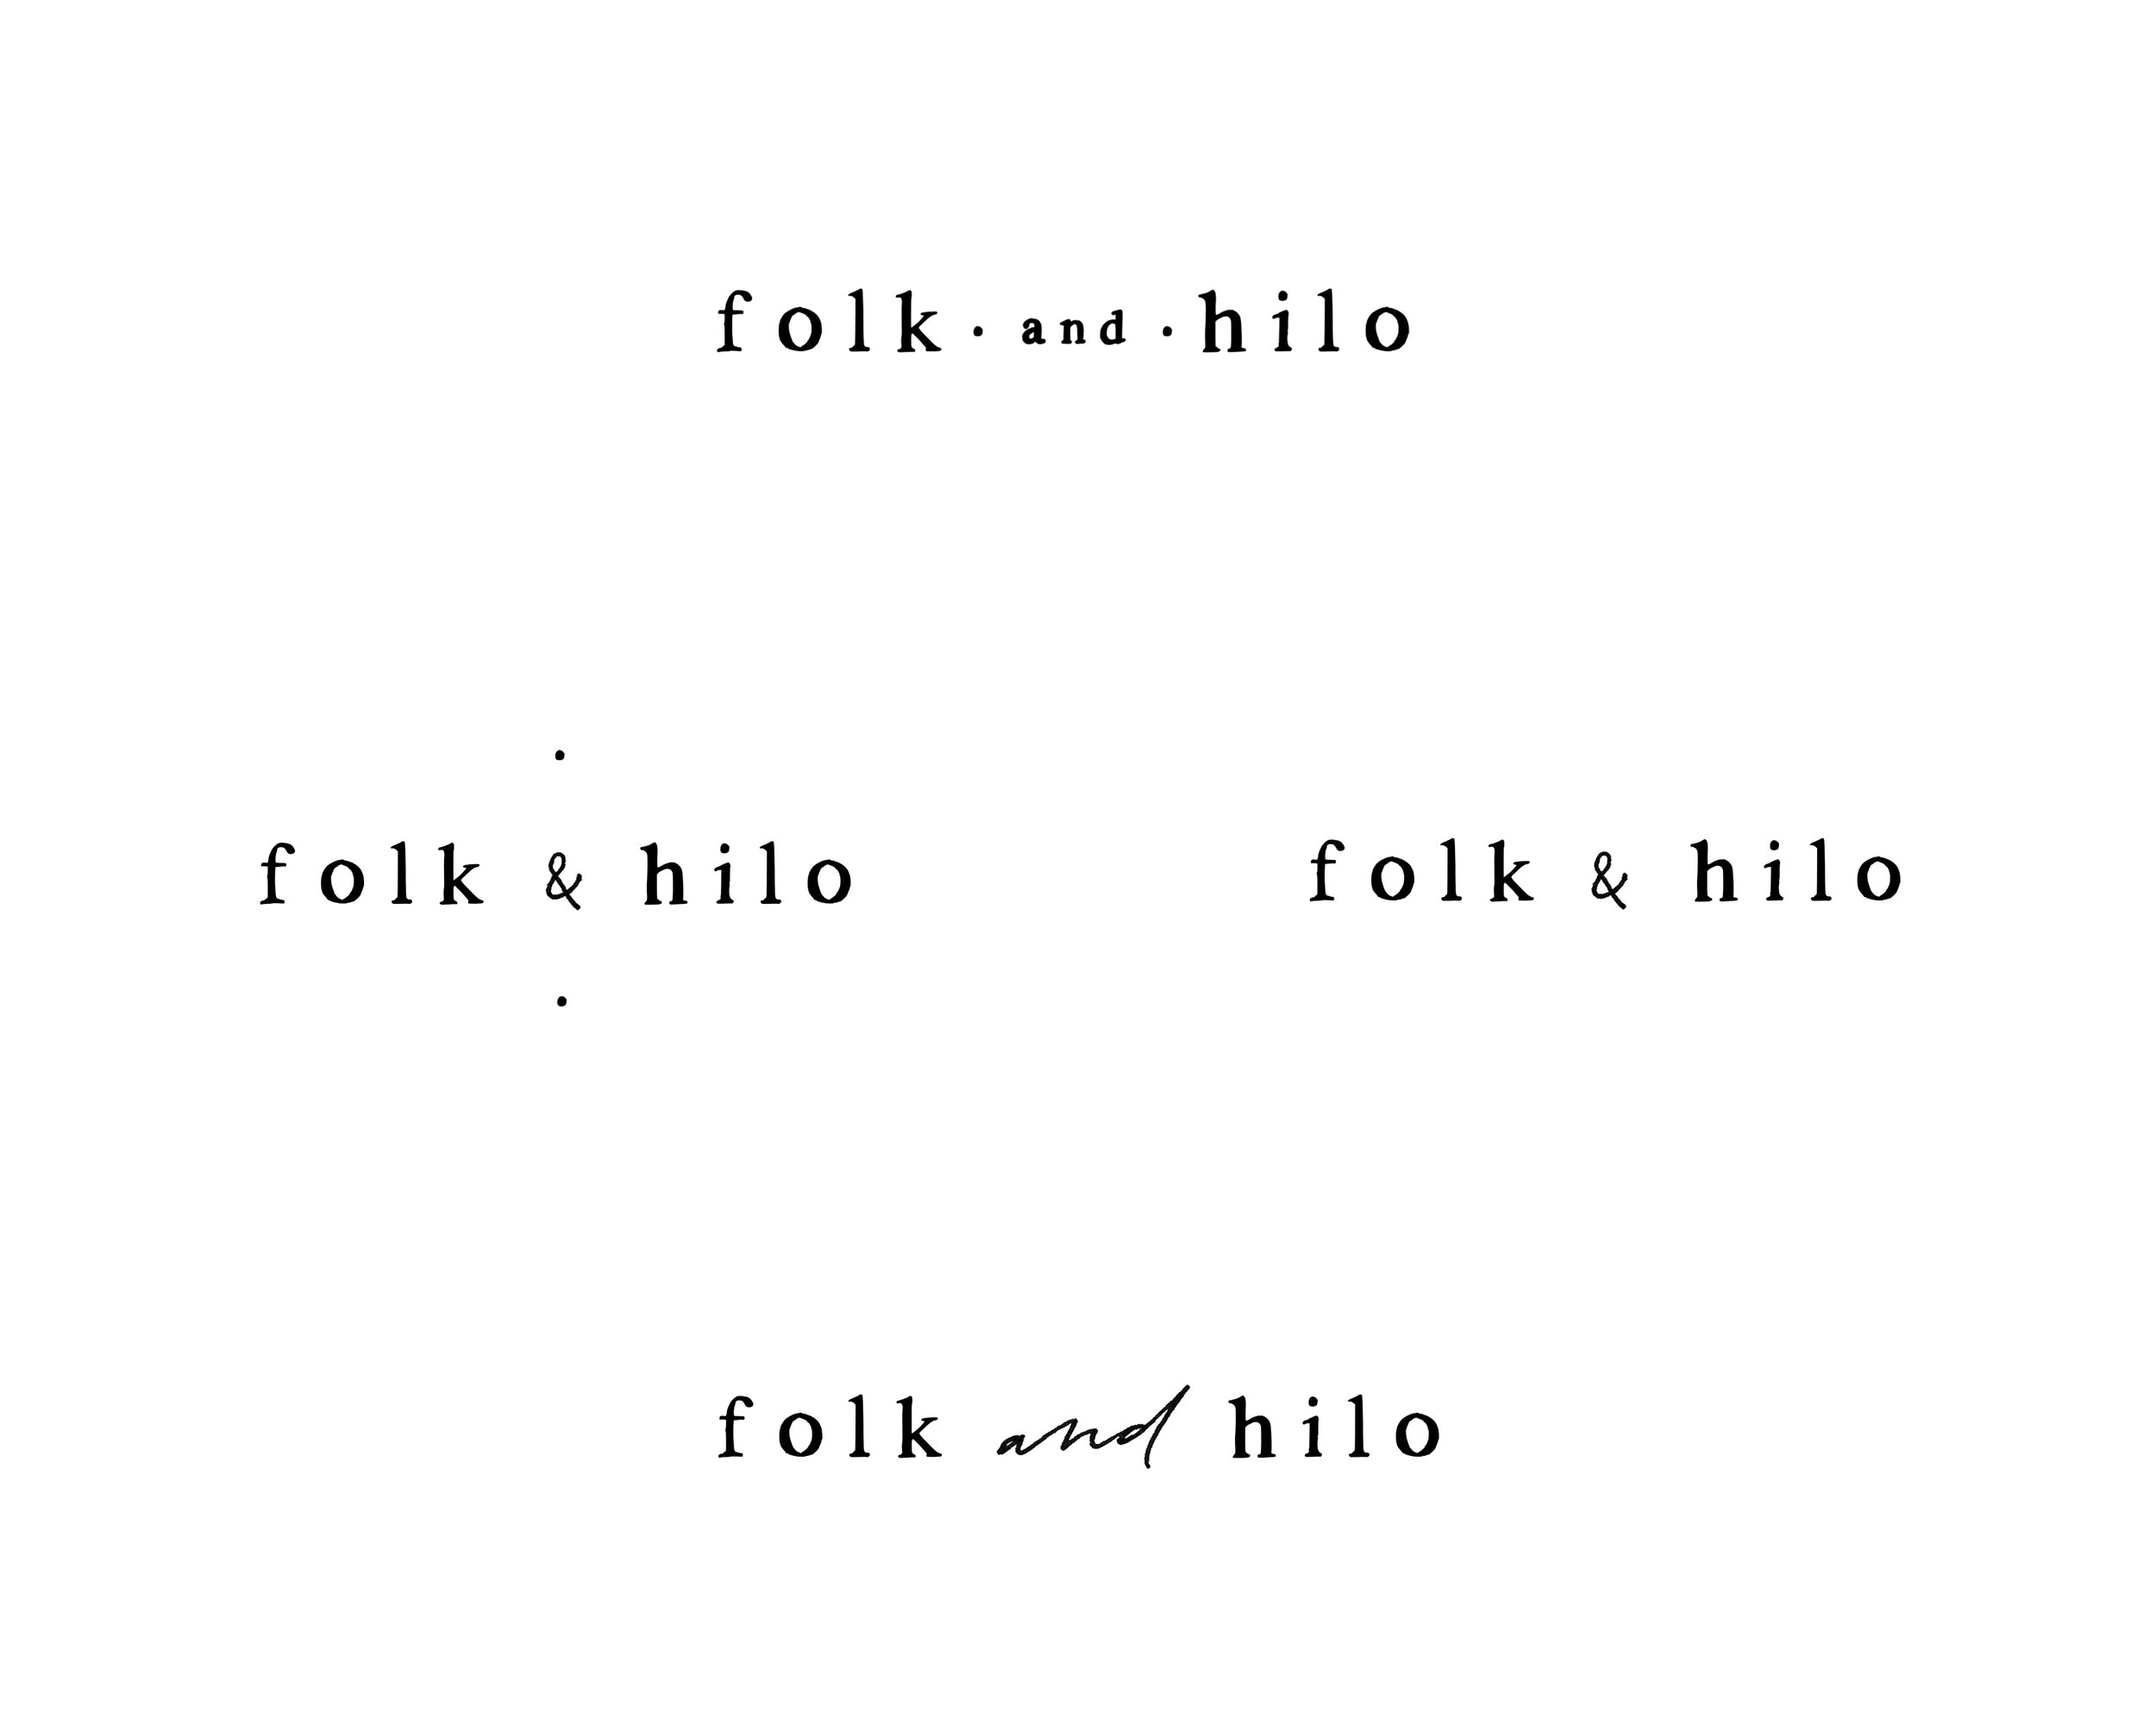 folk and hilo draft 3.jpg